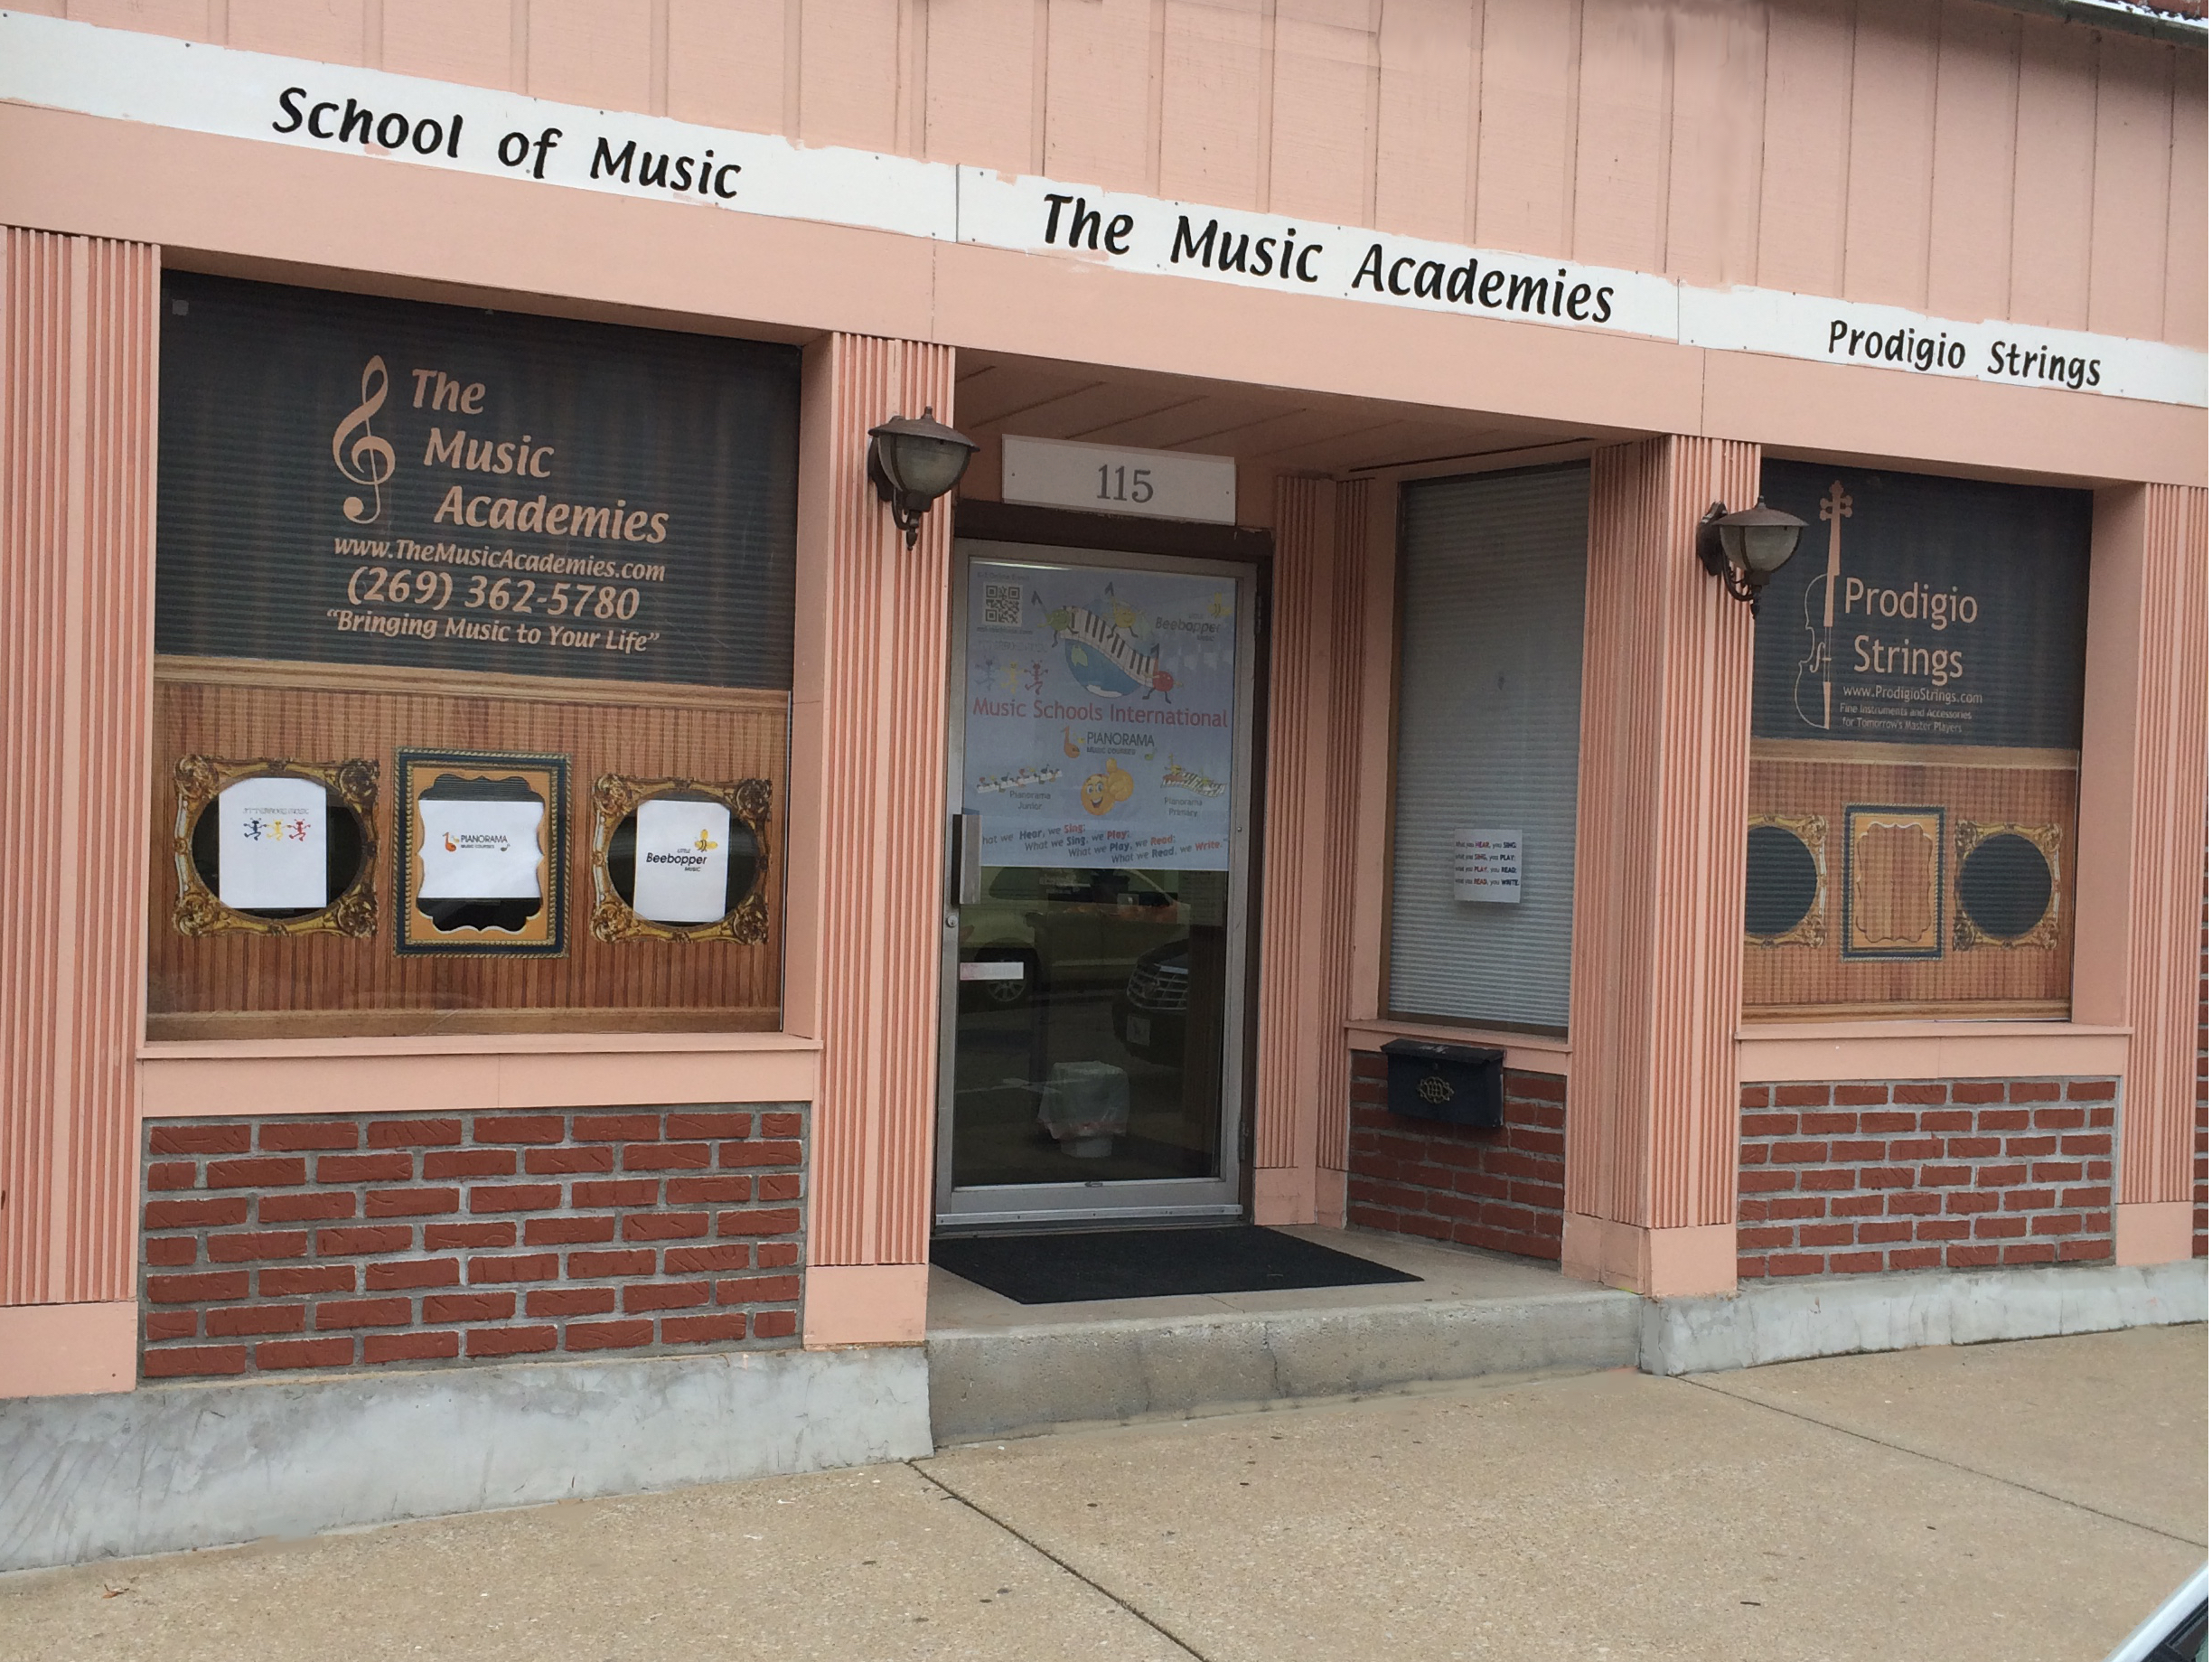 Music Academies Building front